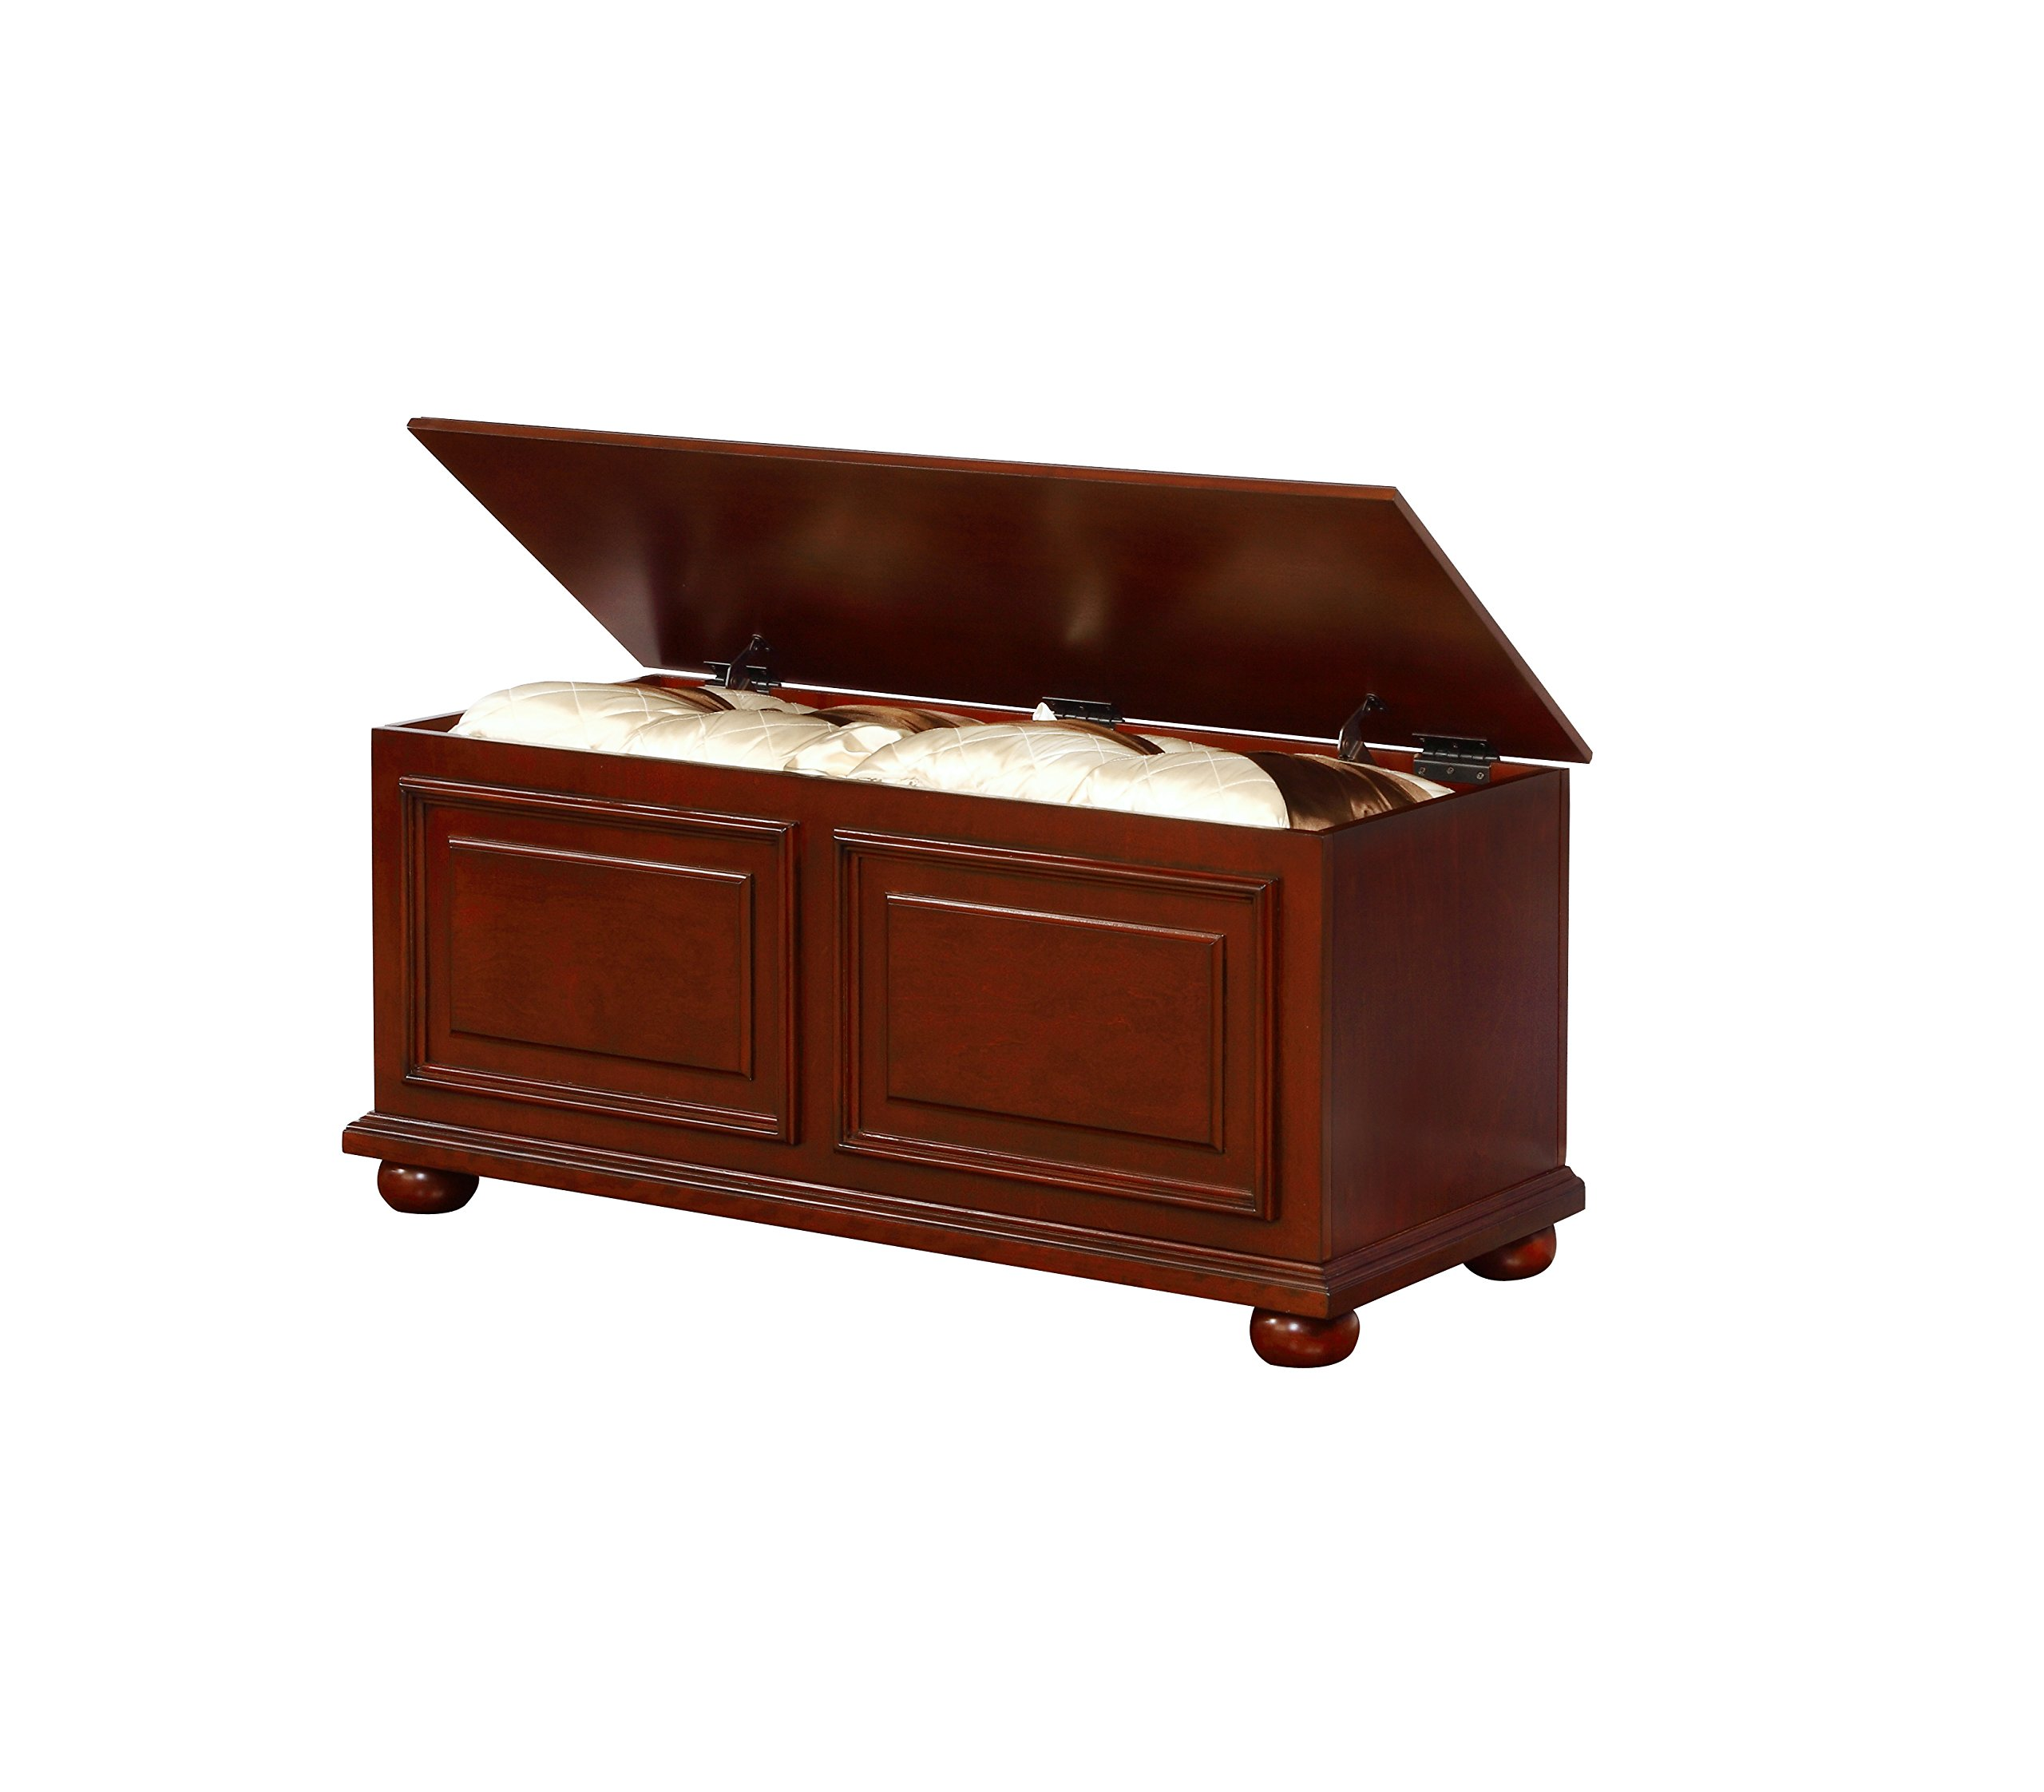 Powell's Furniture 15A7025 Chadwick Cedar Chest, Cherry, by Powell's Furniture